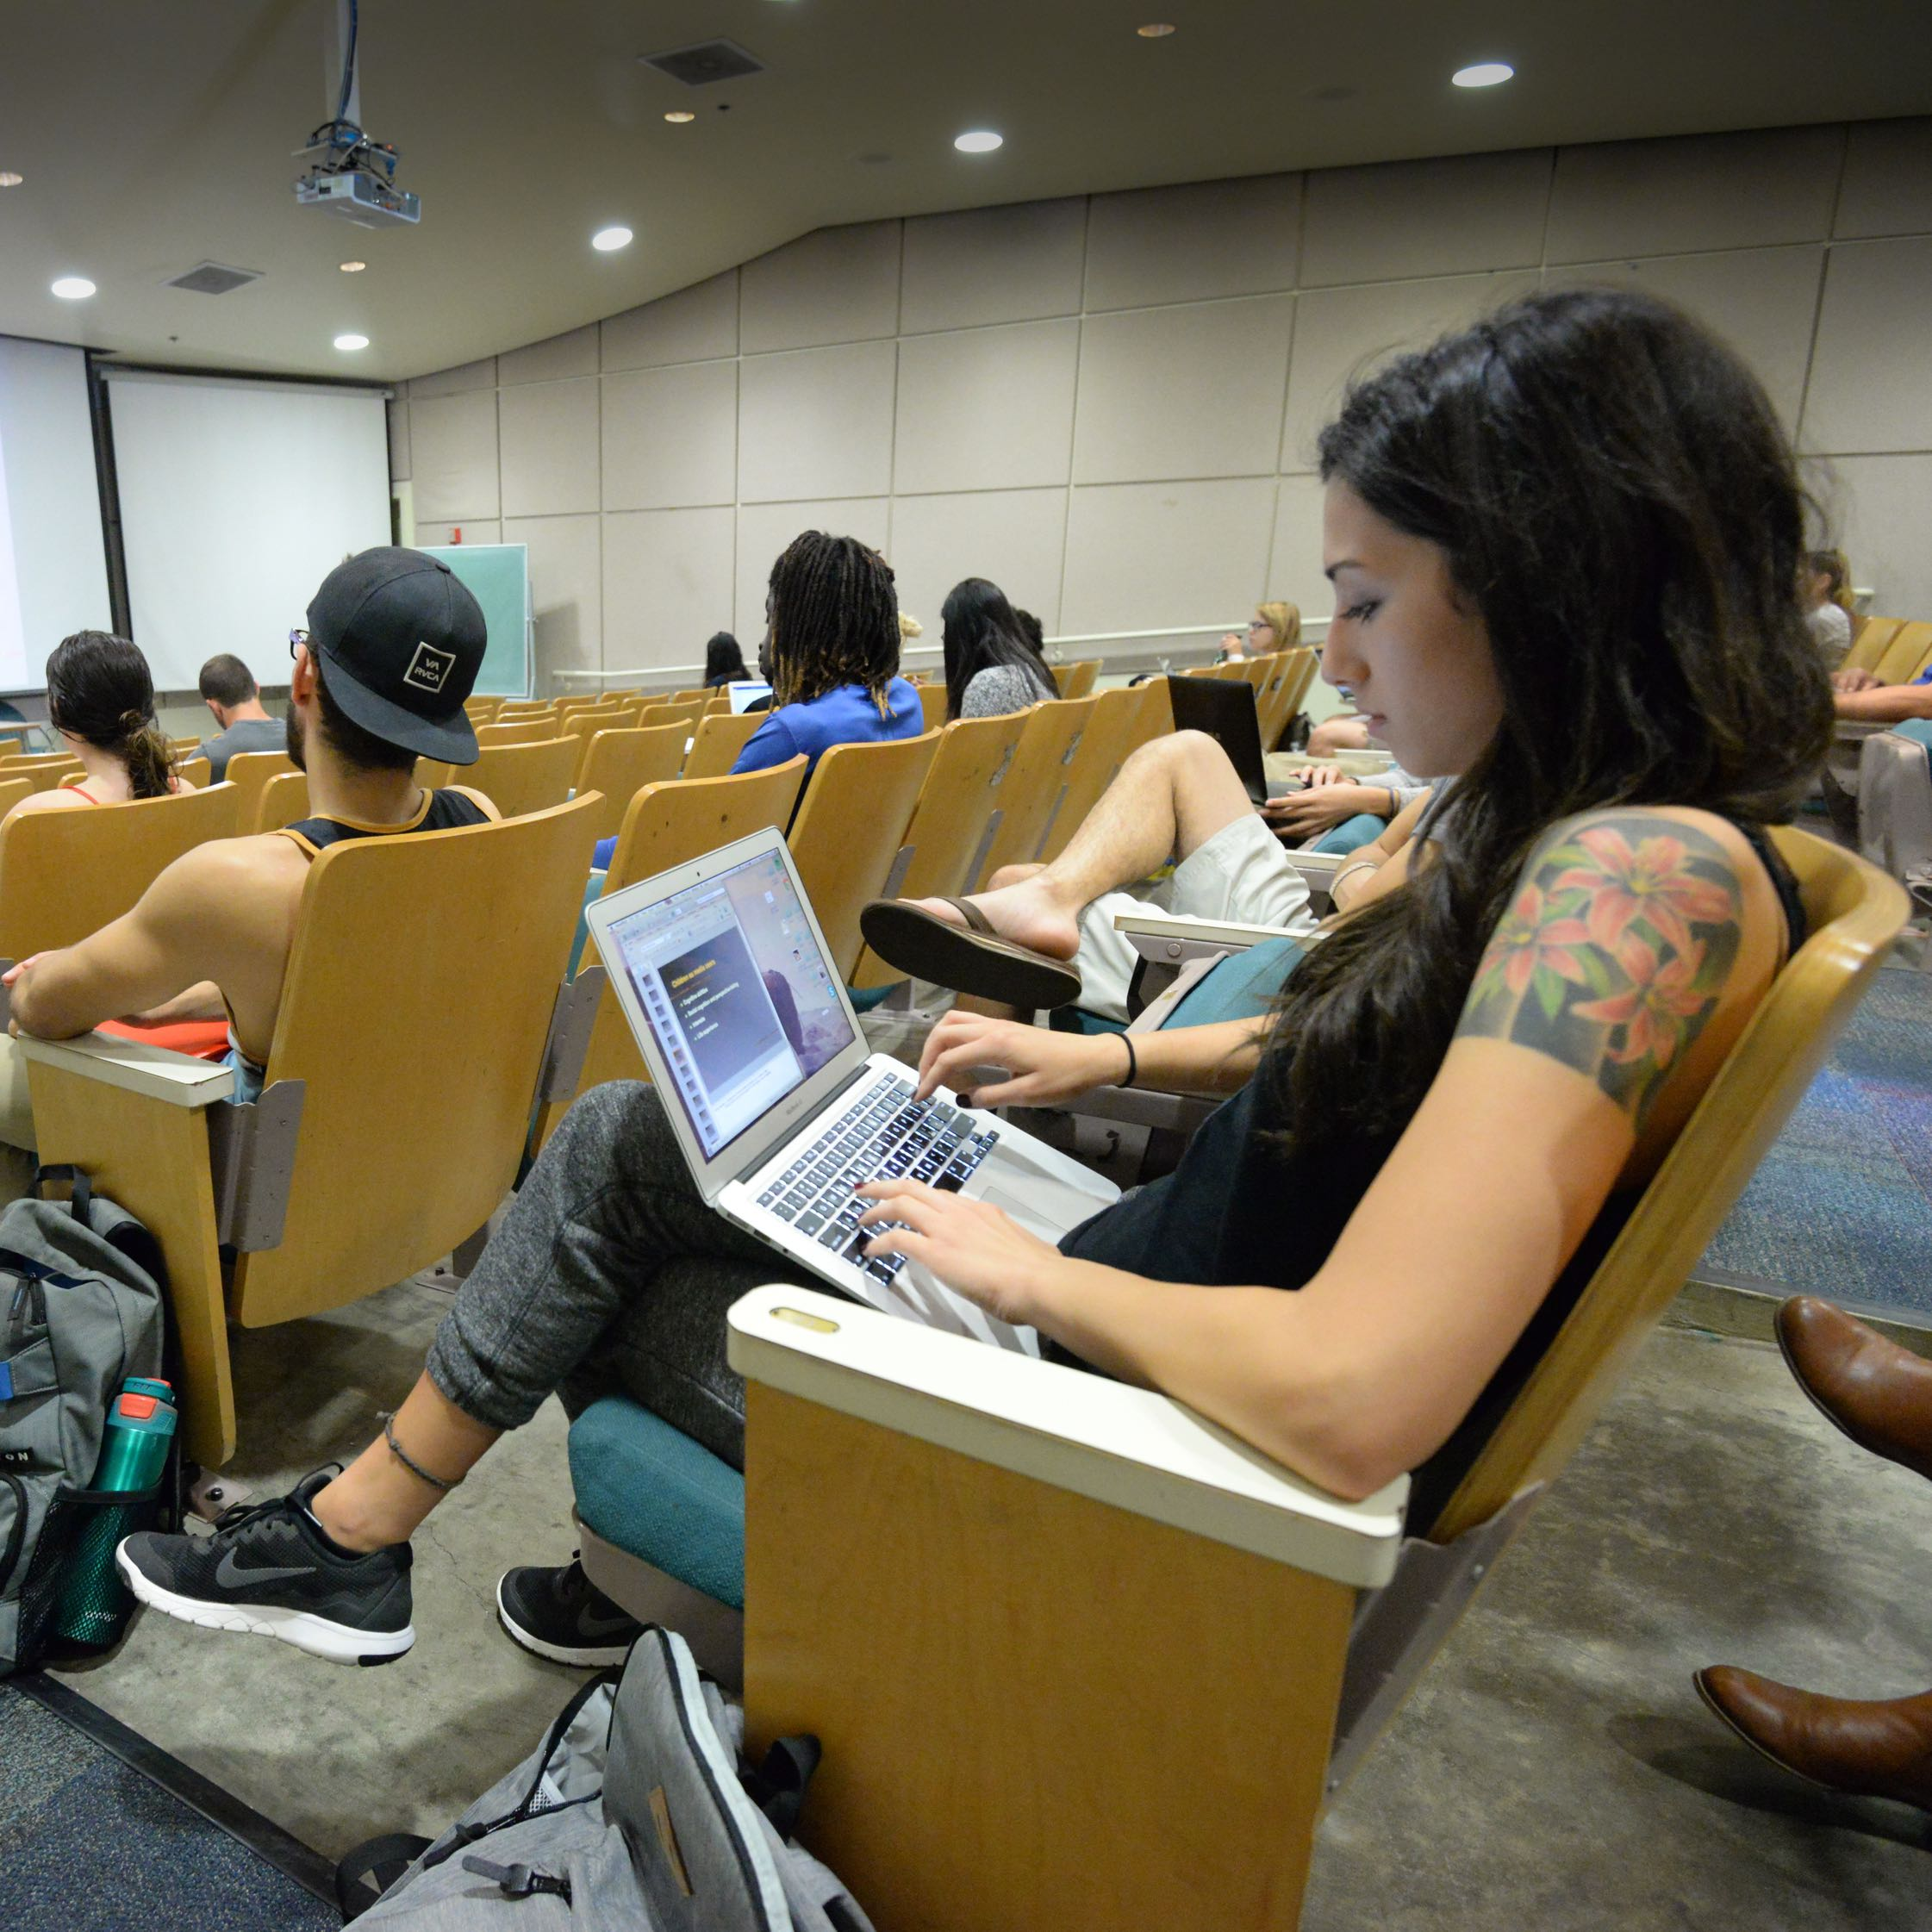 Student studying in lecture hall